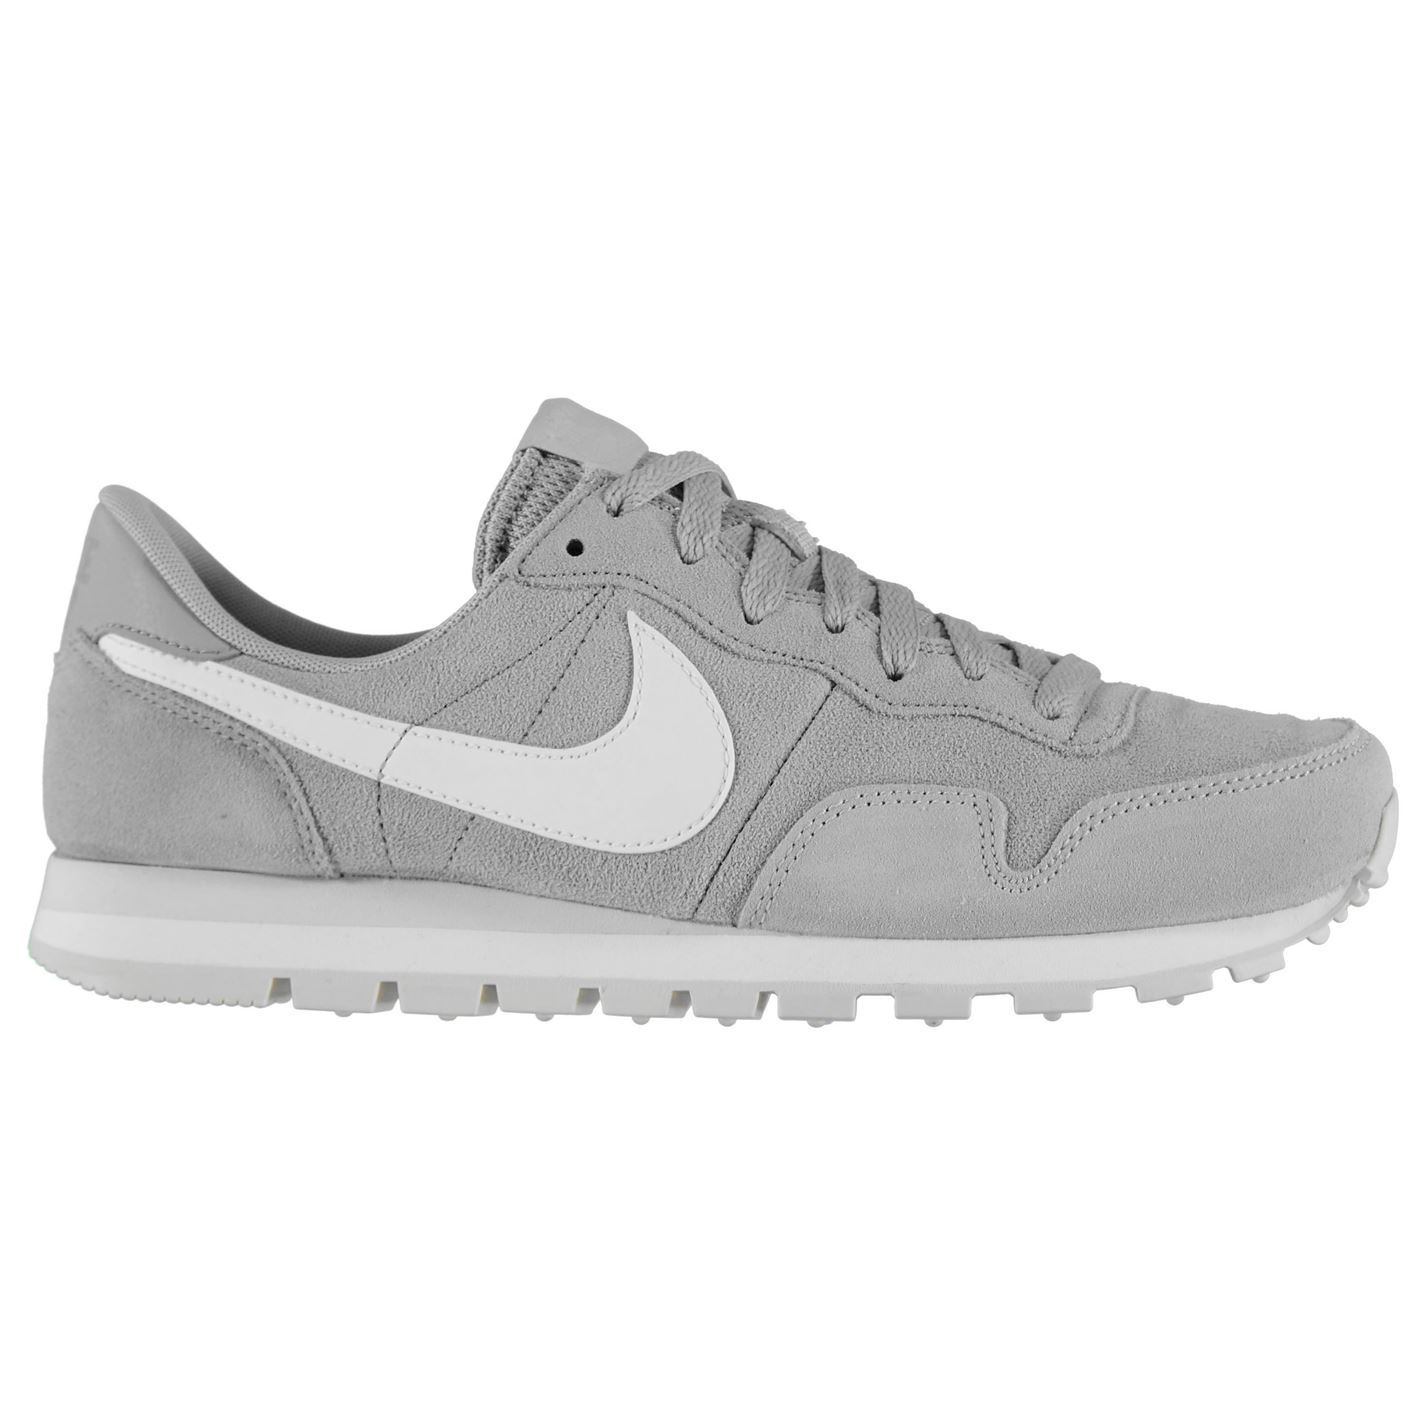 quality design 6b064 9ff25 Nike-Air-Pegasus-83-Trainers-Mens-Athleisure-Footwear-